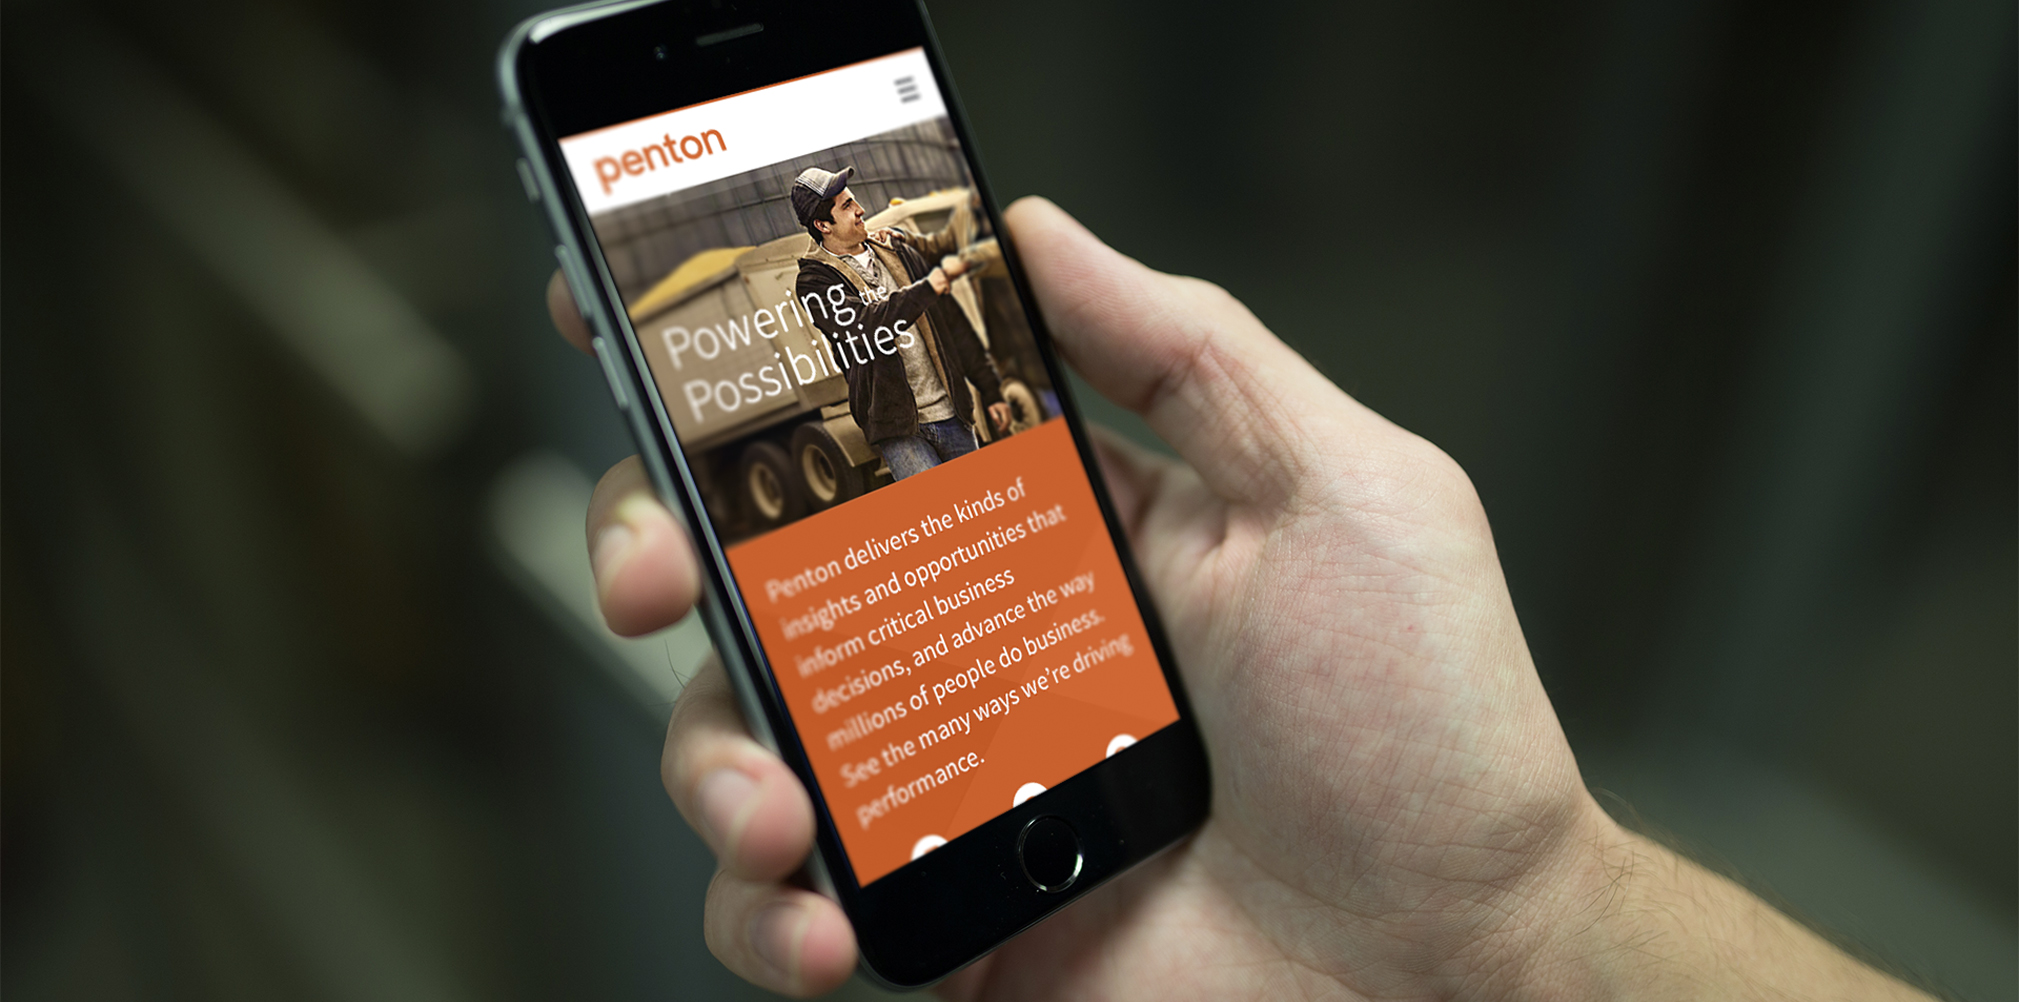 Readability on a mobile device is paramount for Penton